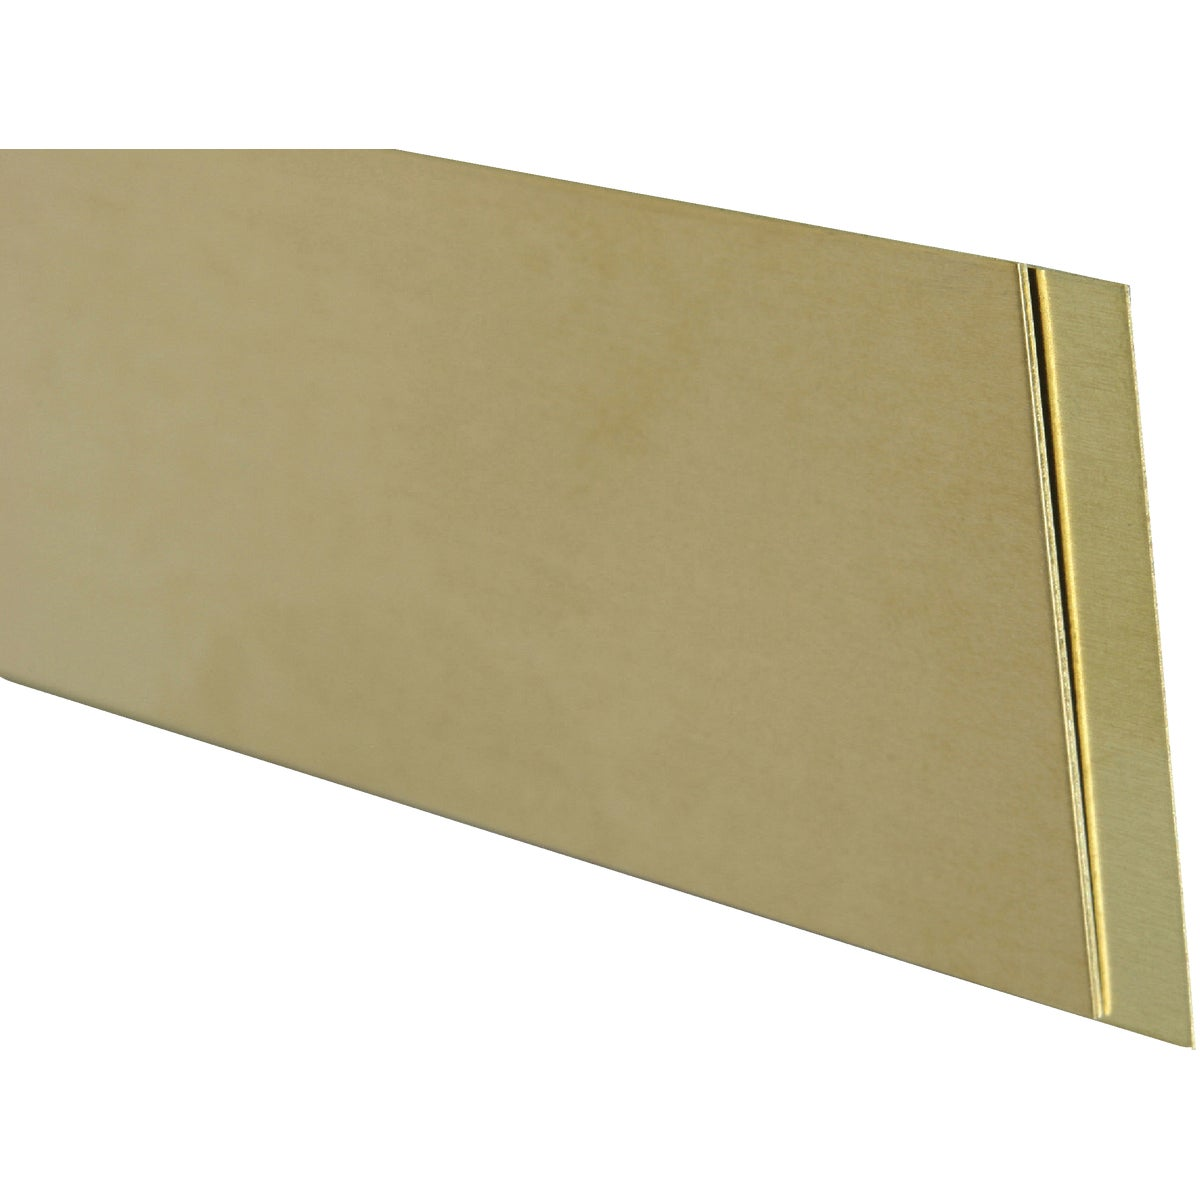 .093X1/4X12 BRASS STRIP - 8225 by K&s Precision Metals